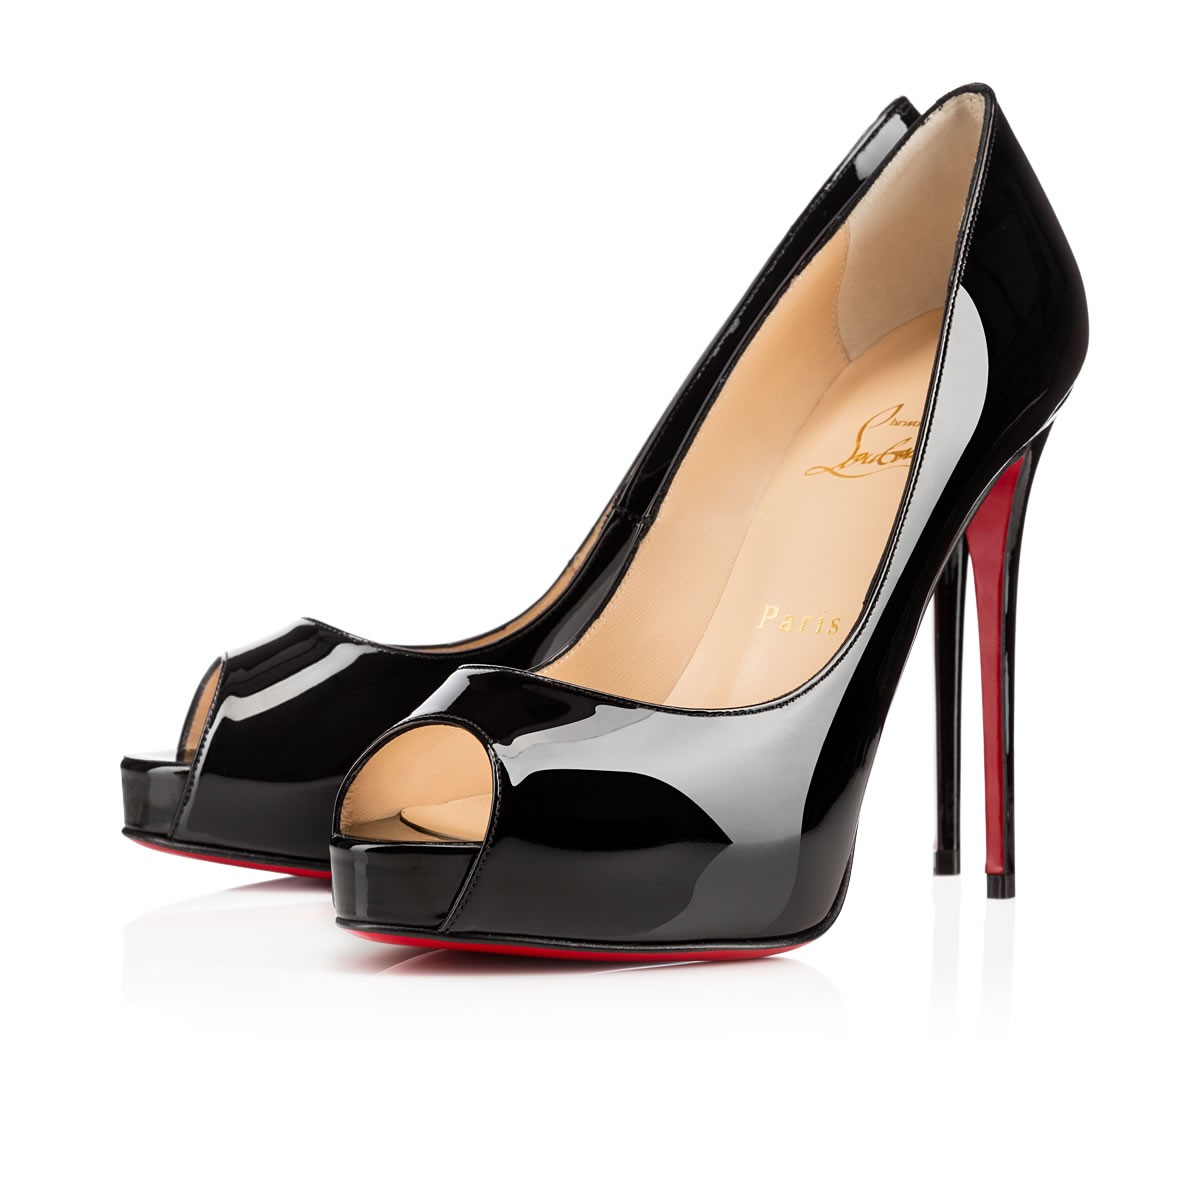 official photos 54bf5 62063 NEW VERY PRIVE 120 Black Patent Calfskin - Women Shoes - Christian Louboutin